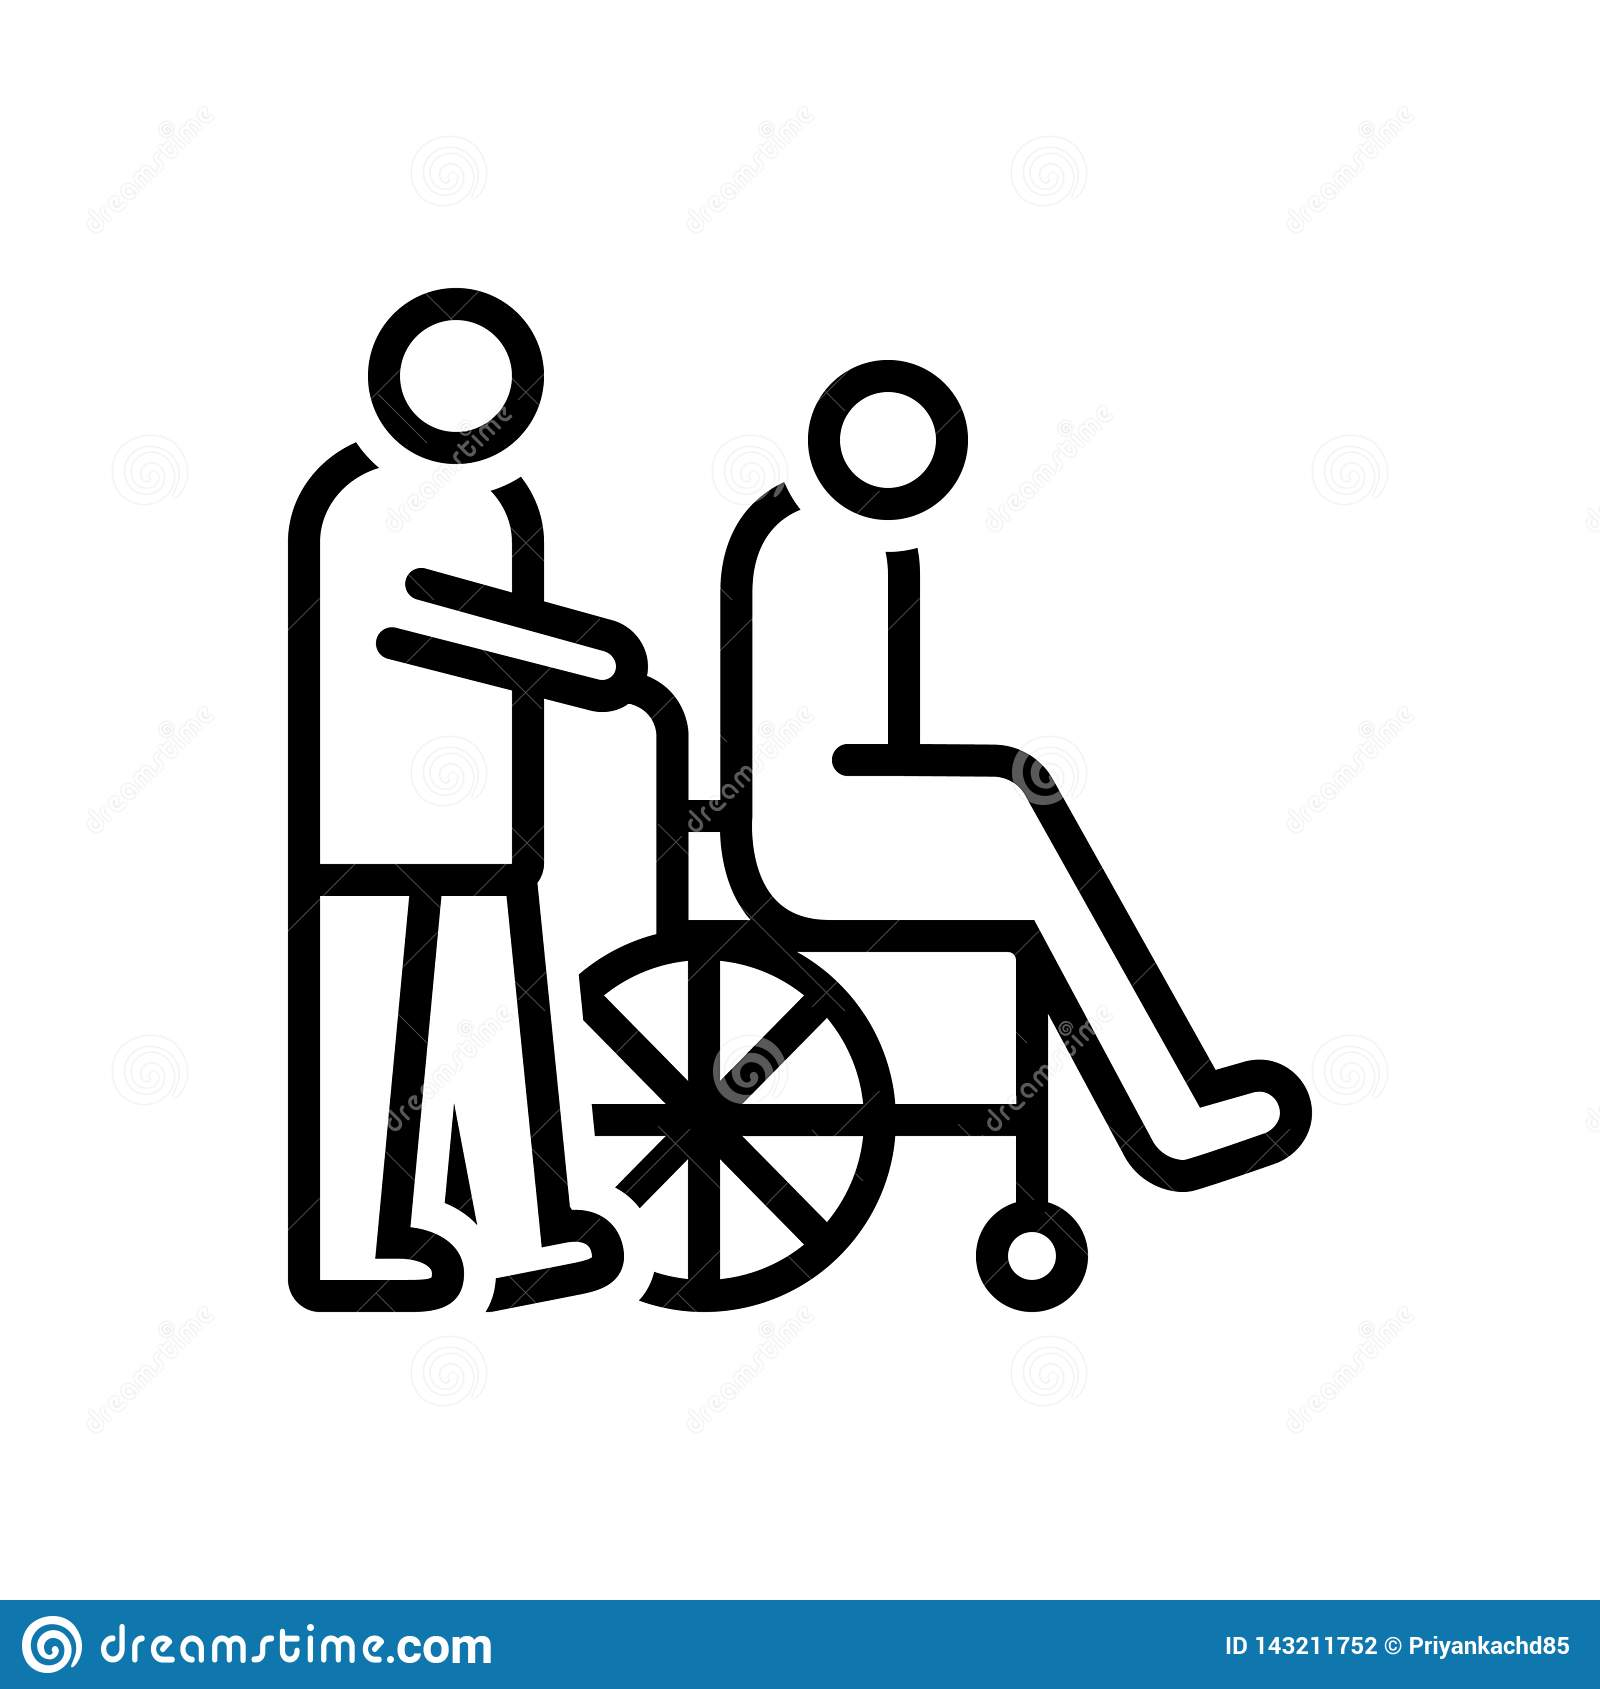 Black line icon for Caregivers, caretaker and wheelchair